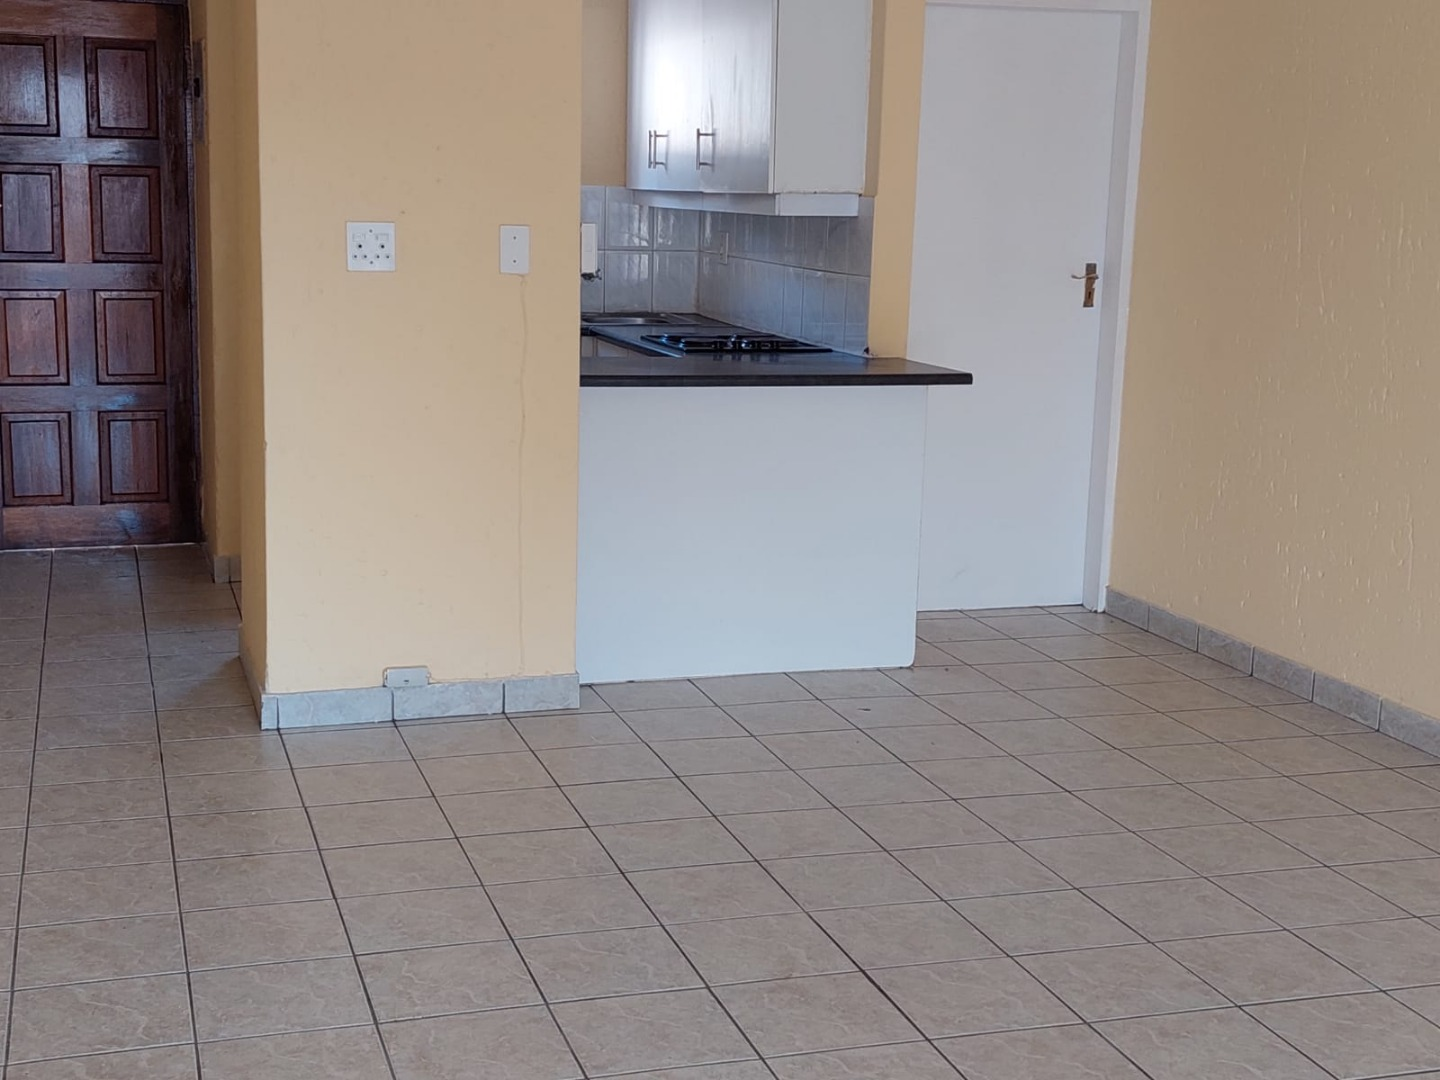 3 Bedroom Apartment / Flat For Sale in Meredale